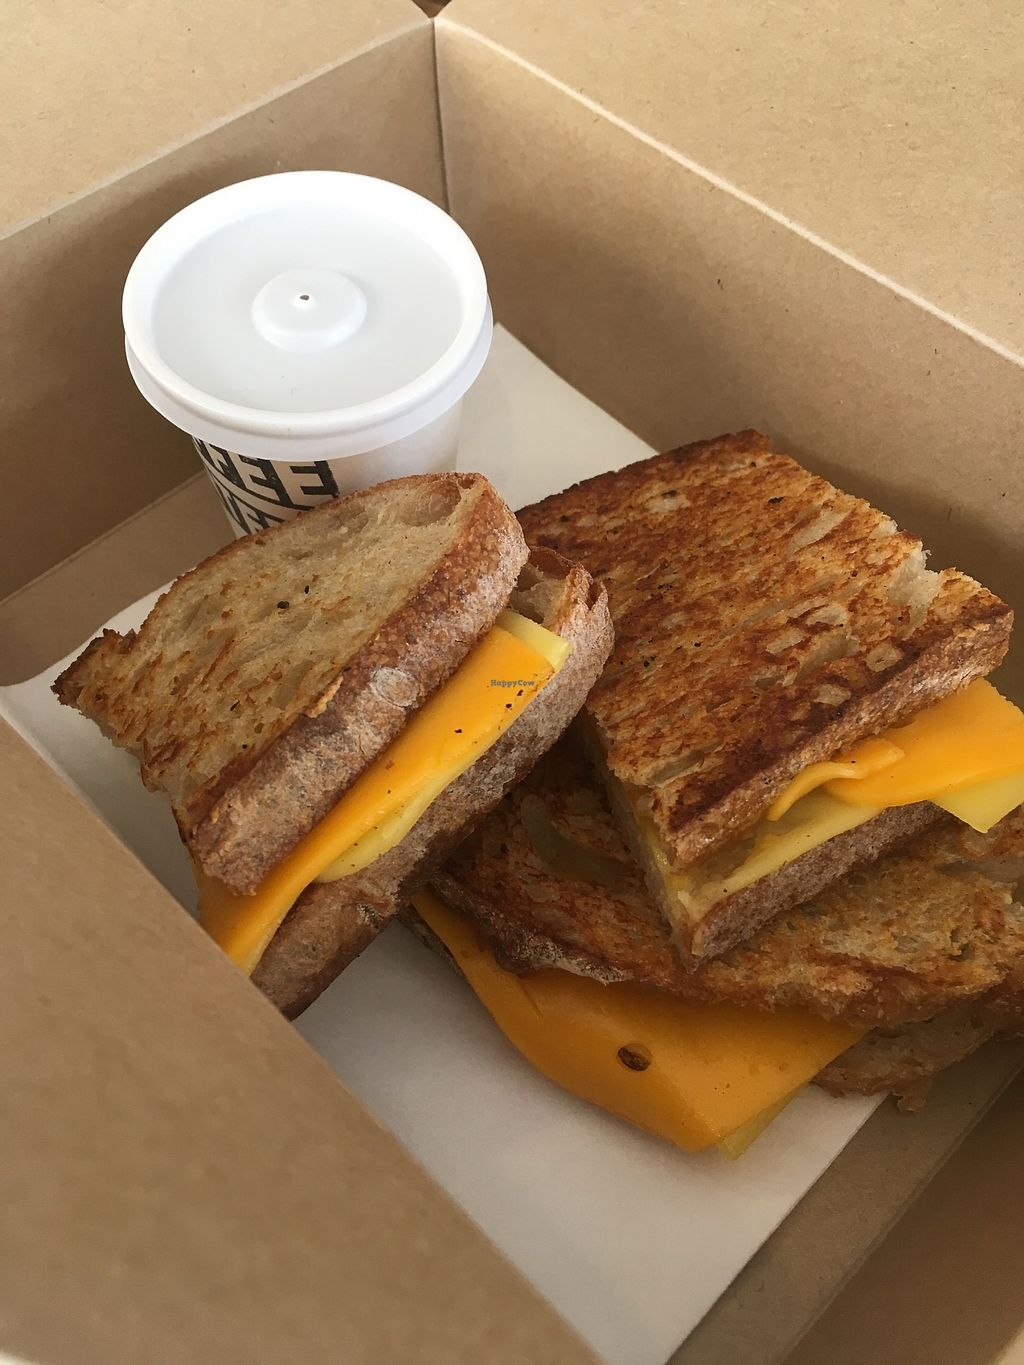 """Photo of The Coffee Counter  by <a href=""""/members/profile/jojoinbrighton"""">jojoinbrighton</a> <br/>Vegan grilled cheese <br/> August 5, 2017  - <a href='/contact/abuse/image/93841/288944'>Report</a>"""